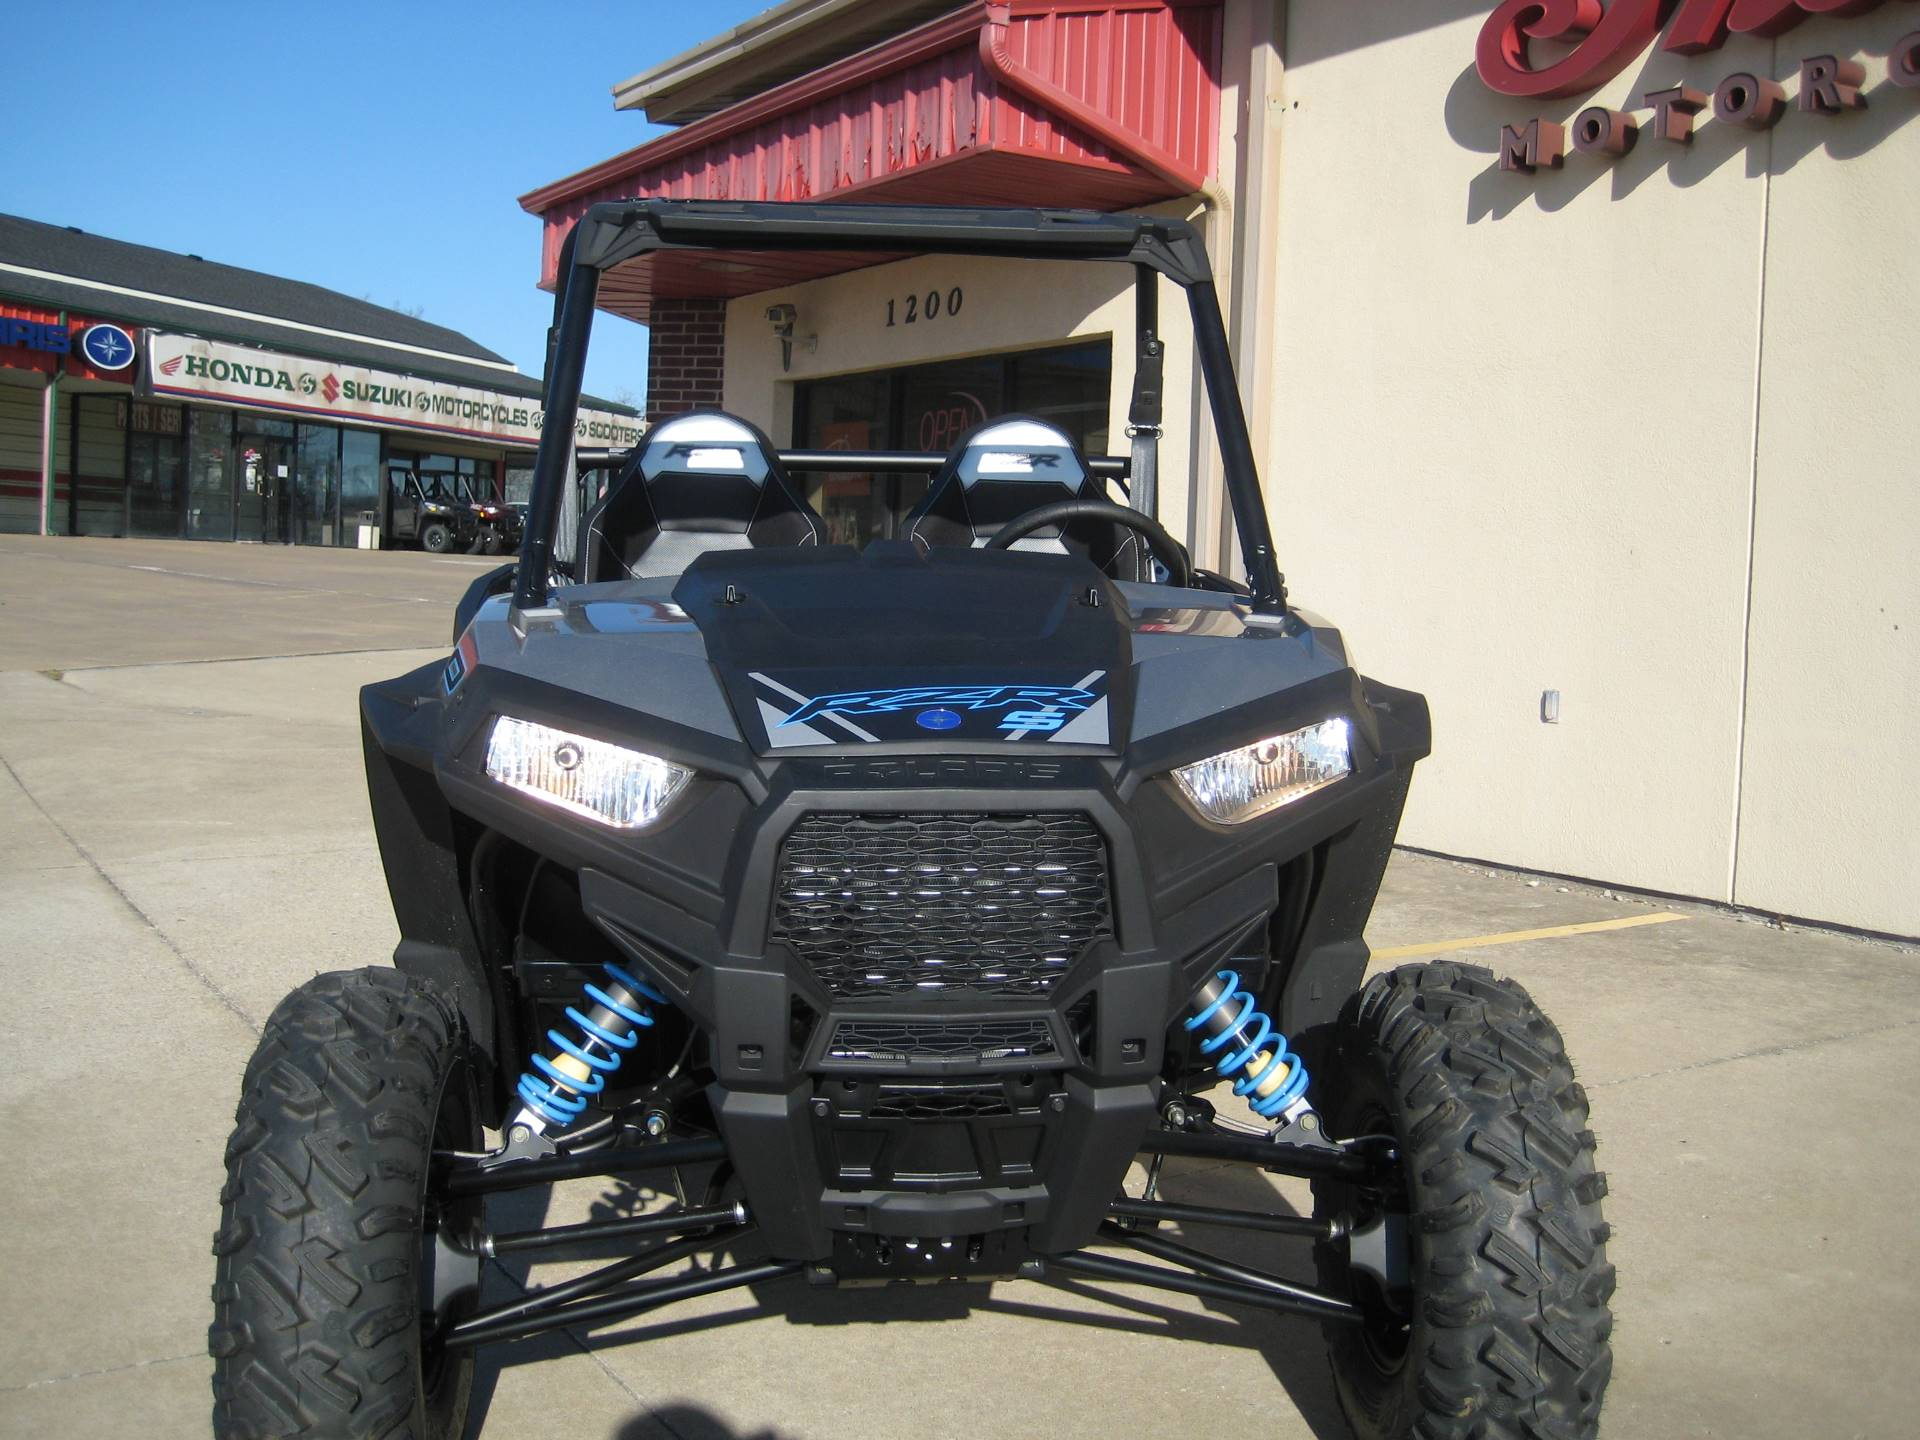 2020 Polaris RZR S 1000 Premium in Broken Arrow, Oklahoma - Photo 2